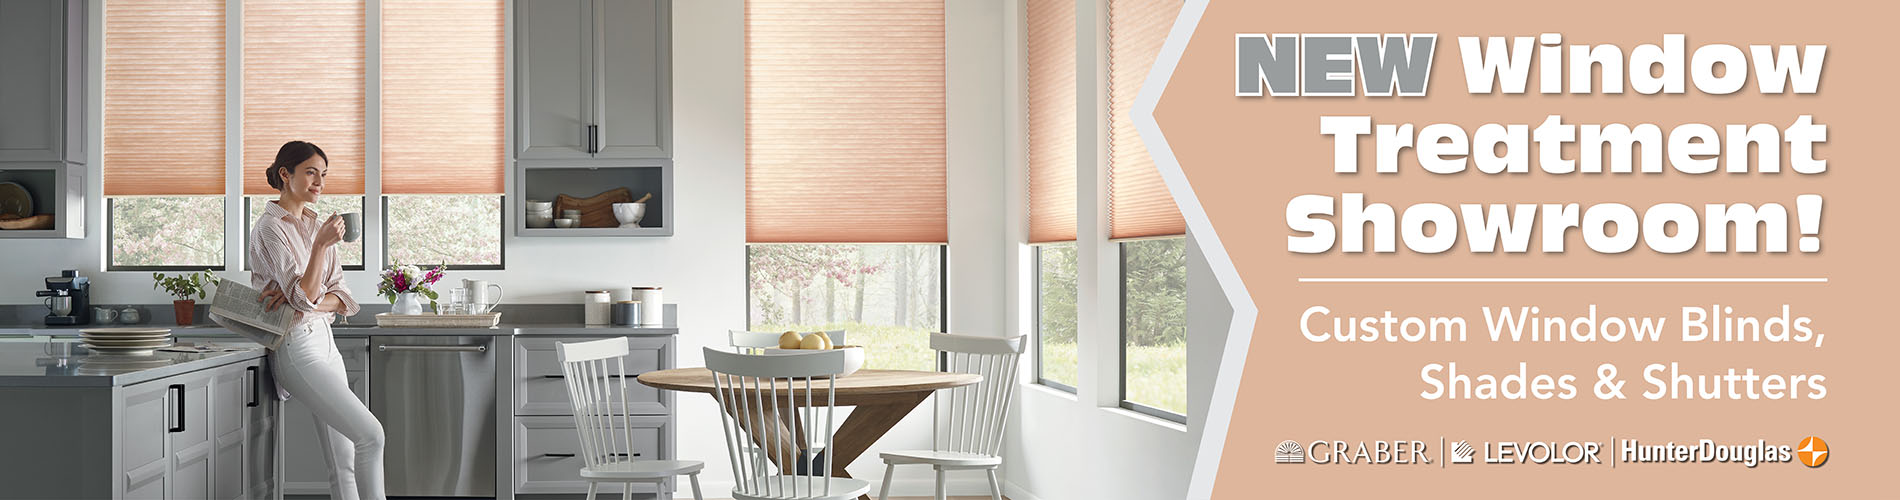 New window treatment showroom with custom window blinds, shades and shutters.